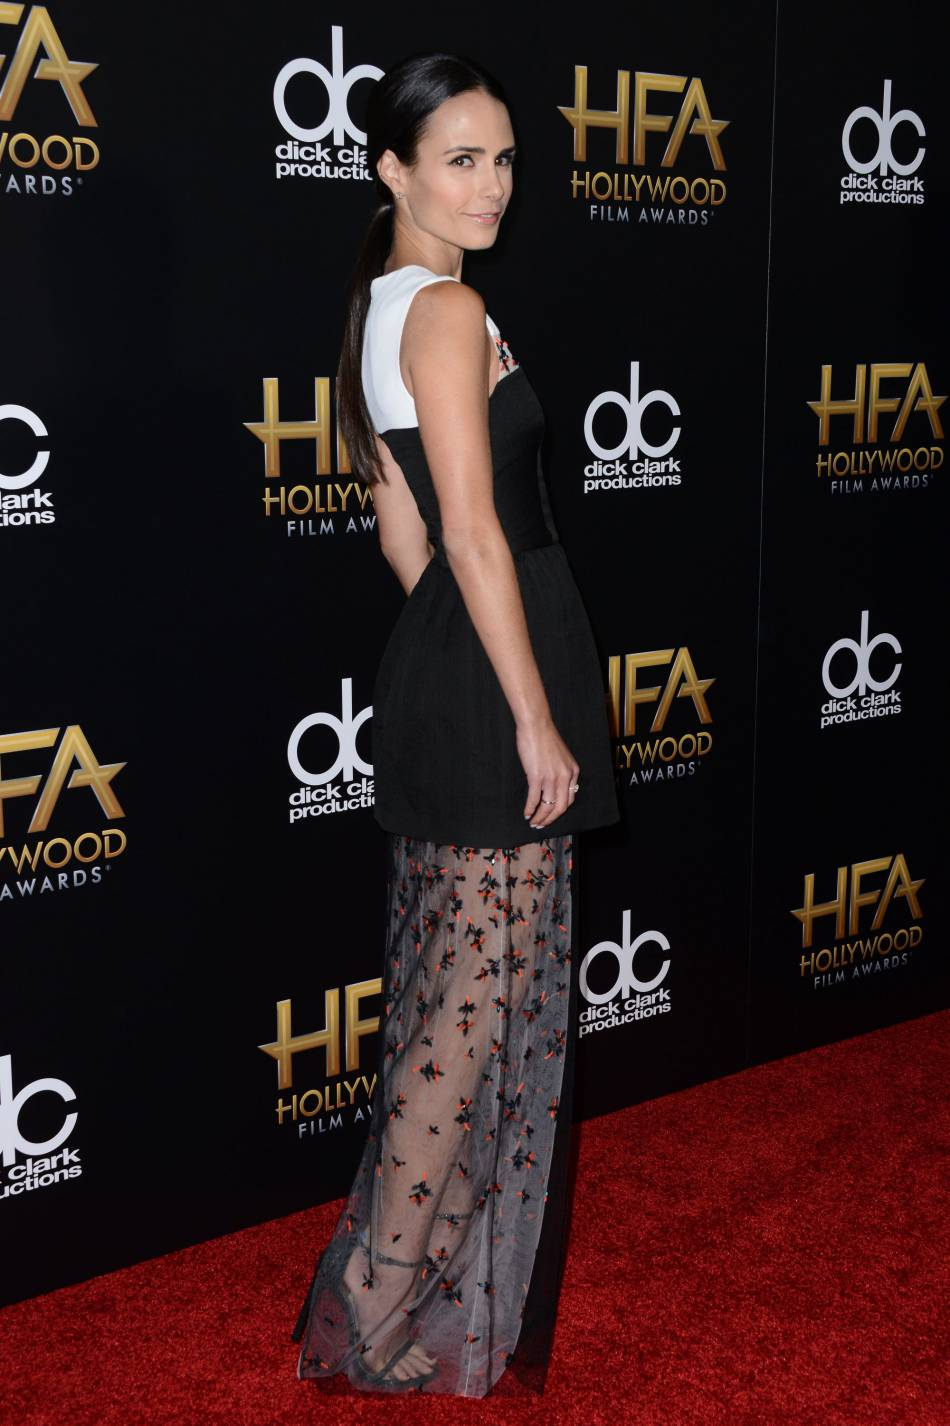 Jordana Brewster sur le red carpet des Hollywood Film Awards le 1er novembre 2015 à Los Angeles.